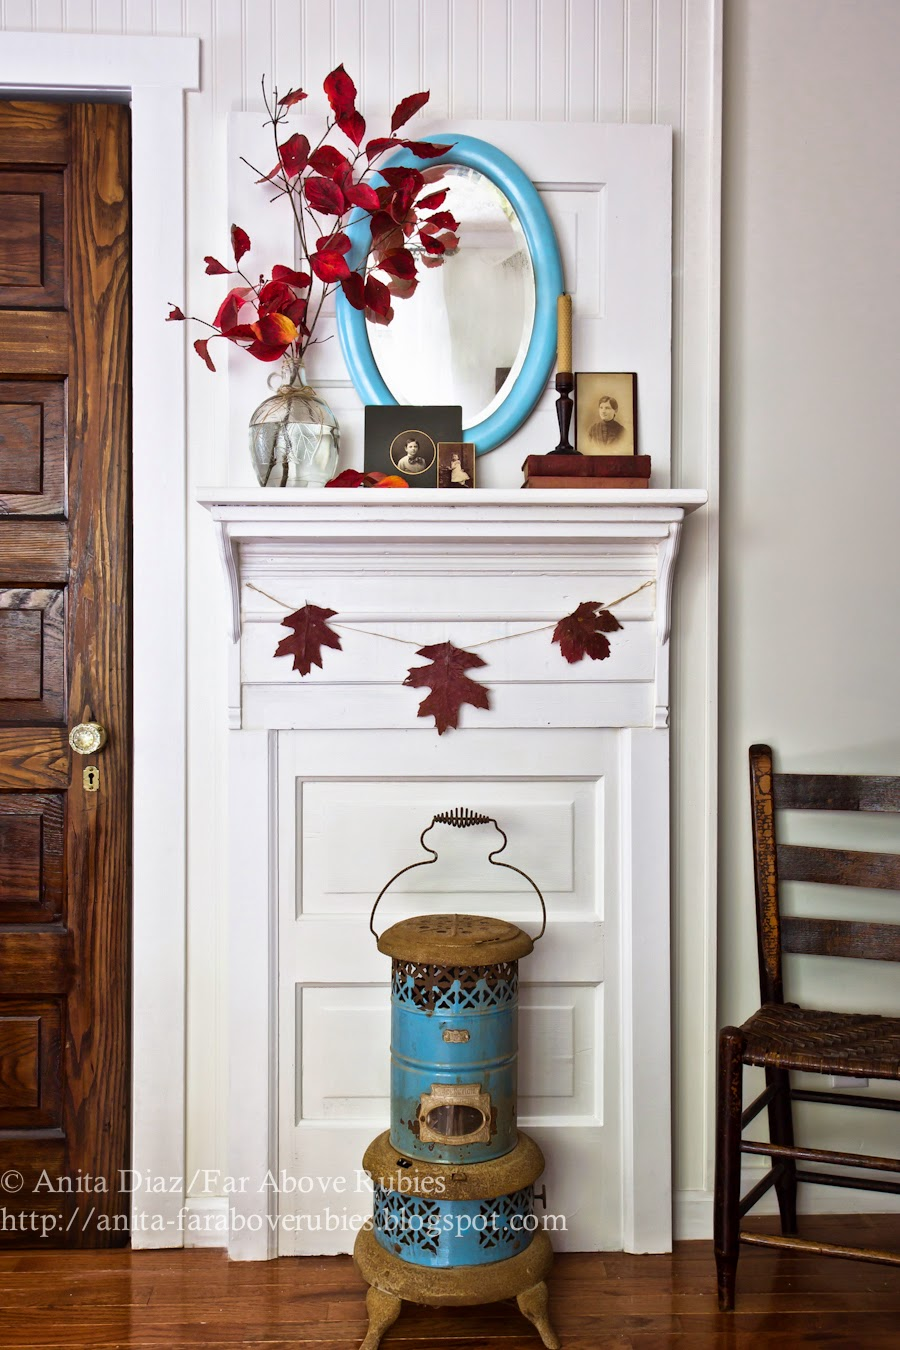 Far above rubies diy door upcycle into mantel for Above door decoration